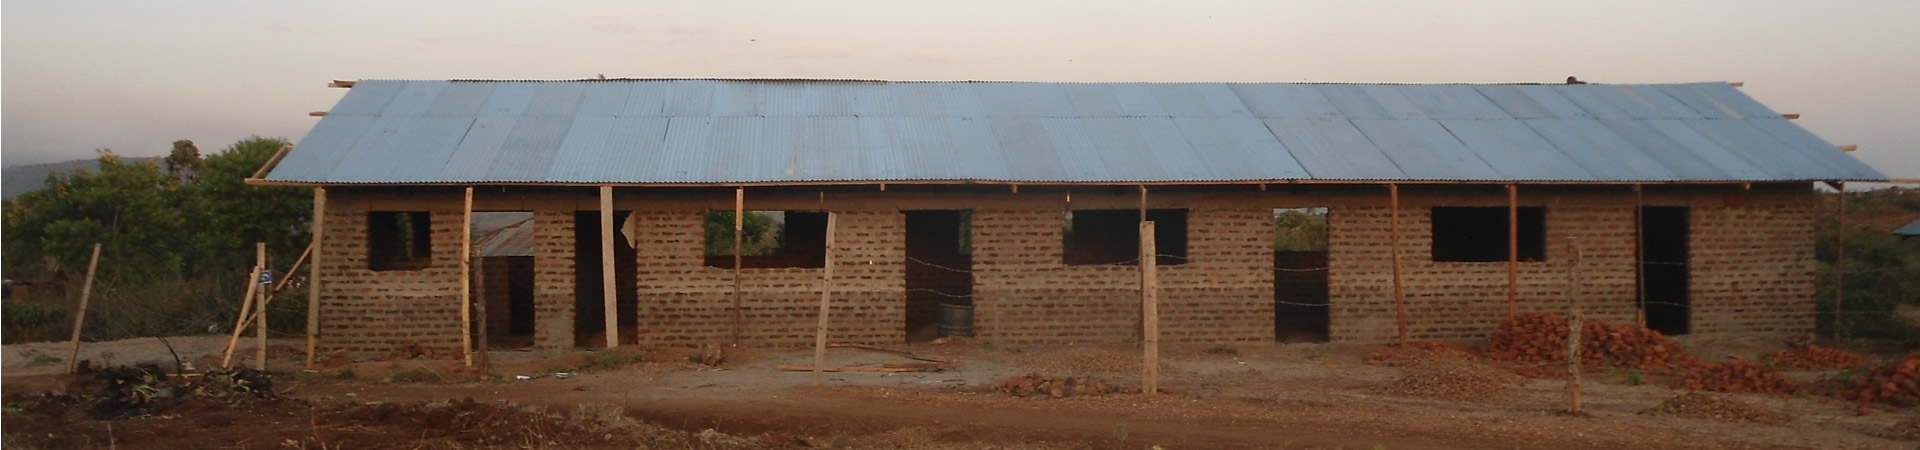 Progress towards completion of our school in Nyiera